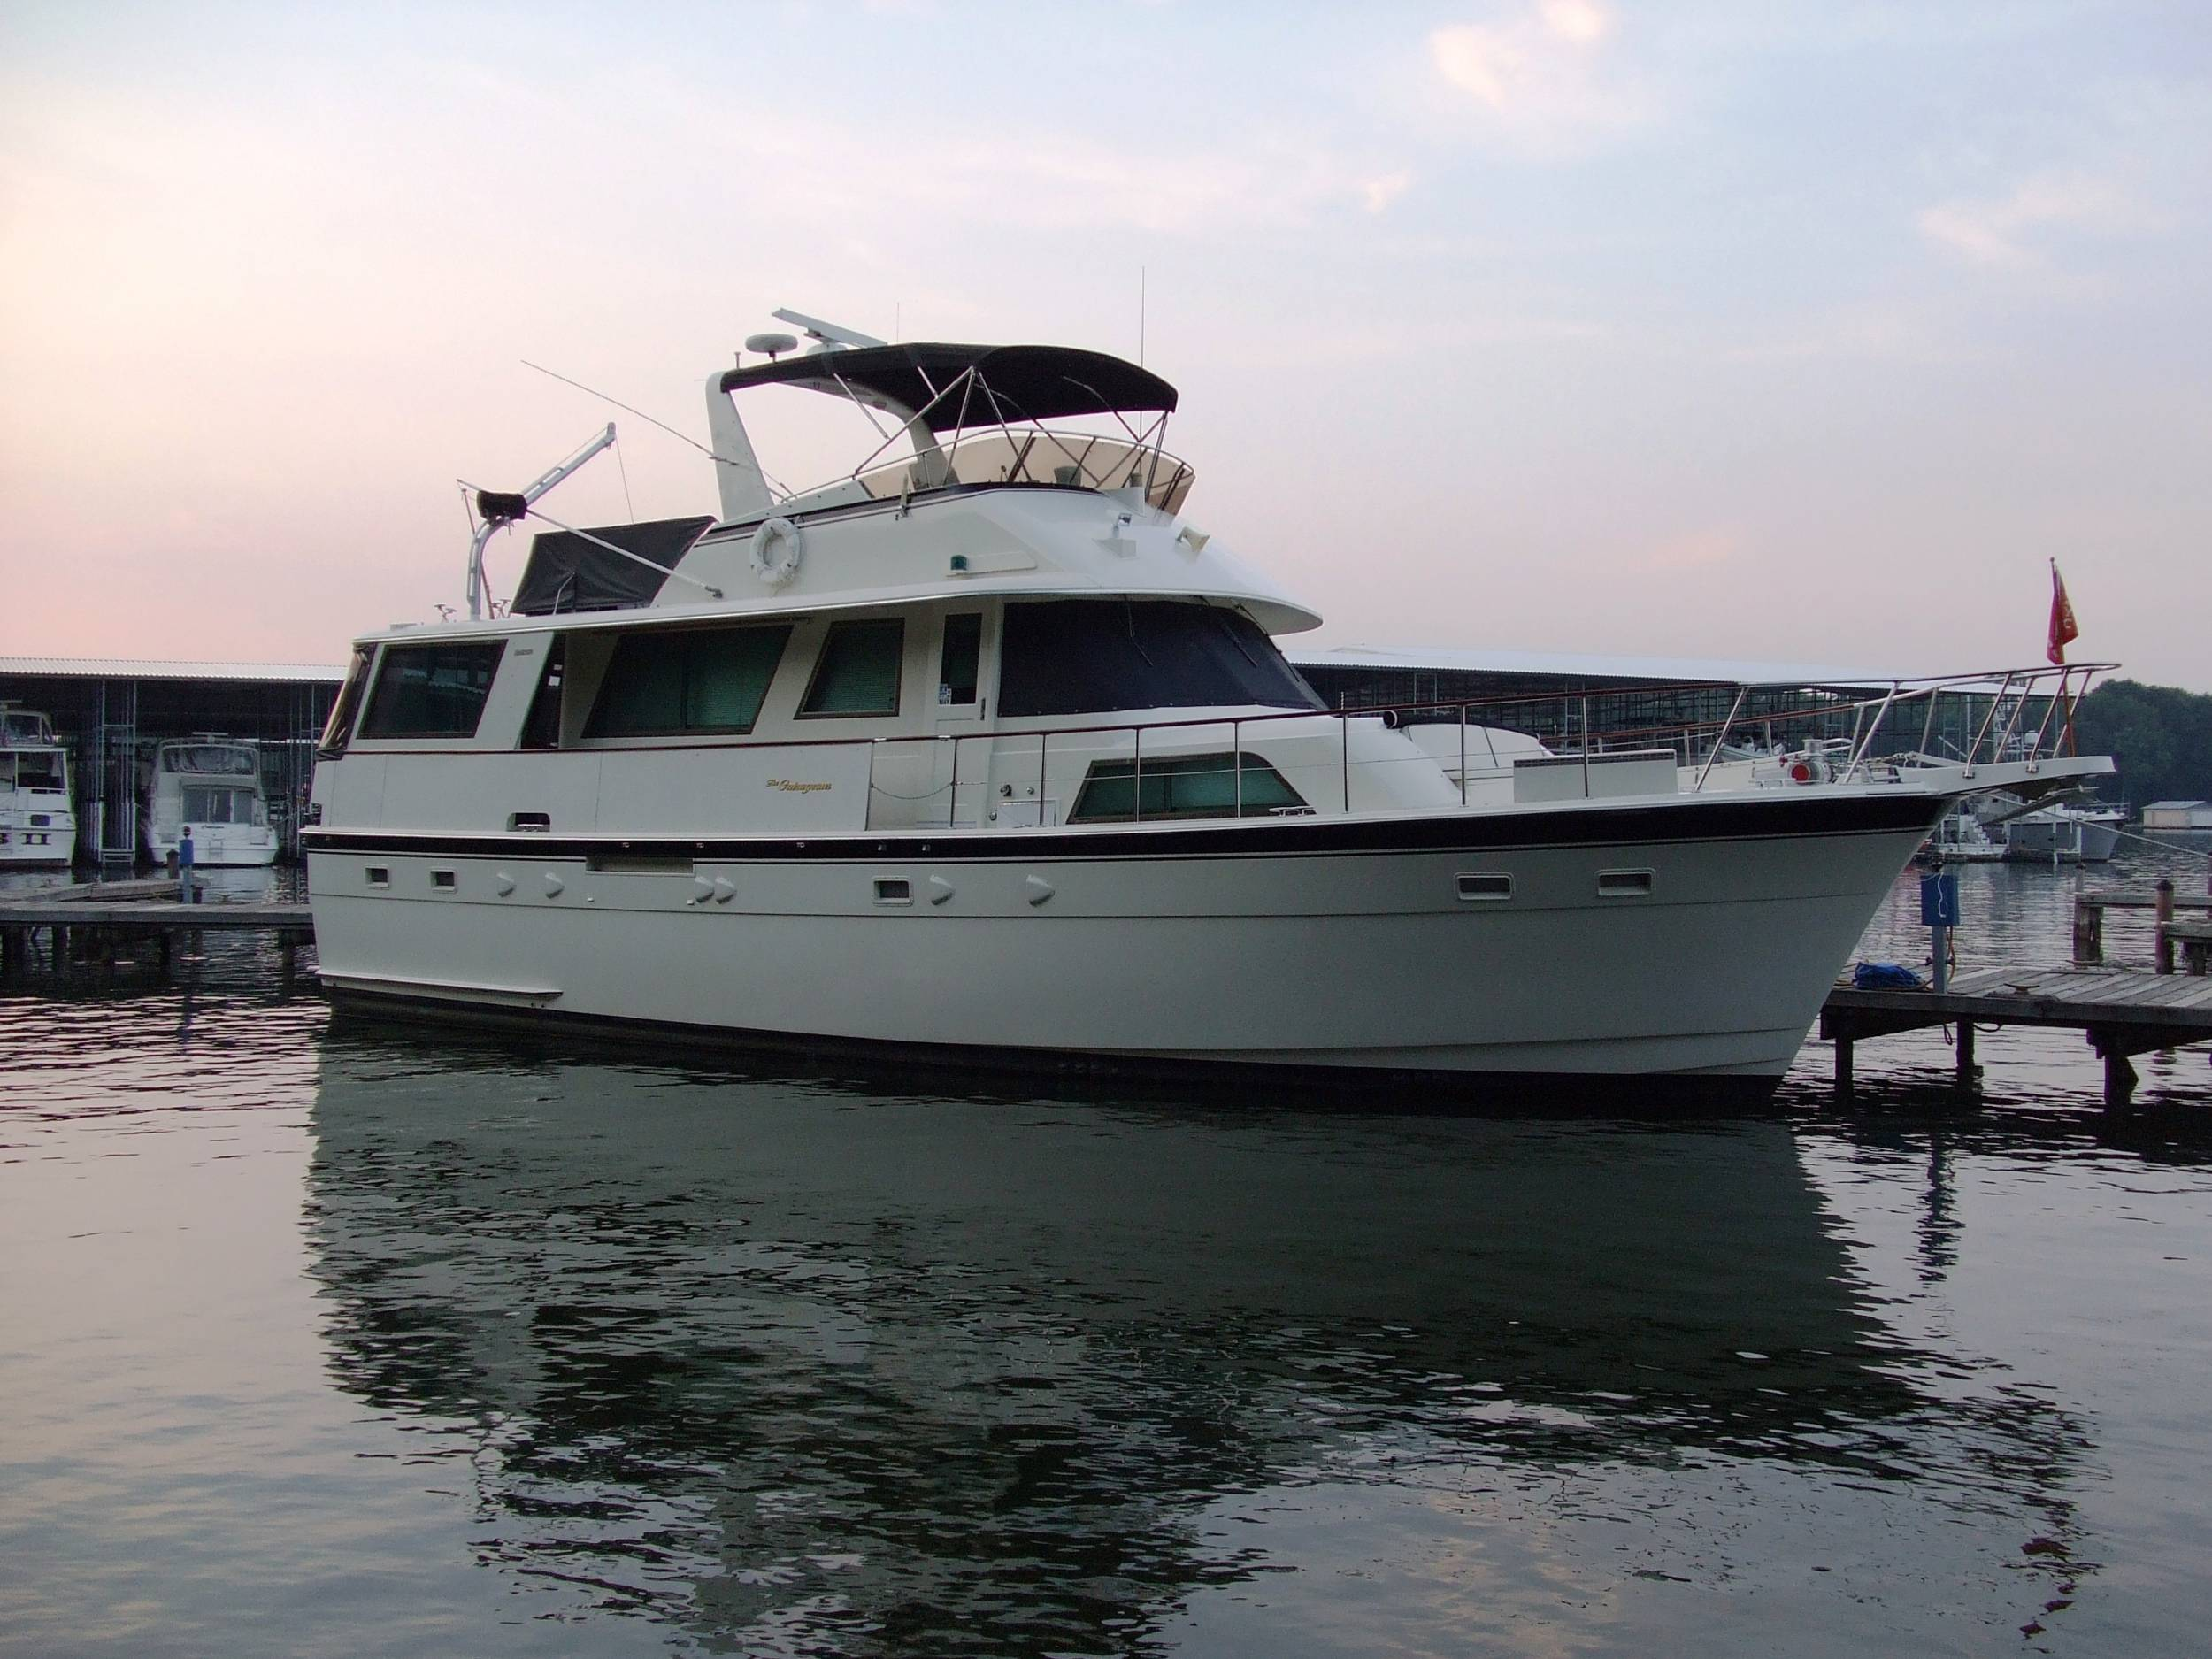 The Outrageous: 1984 56' Motor Yacht